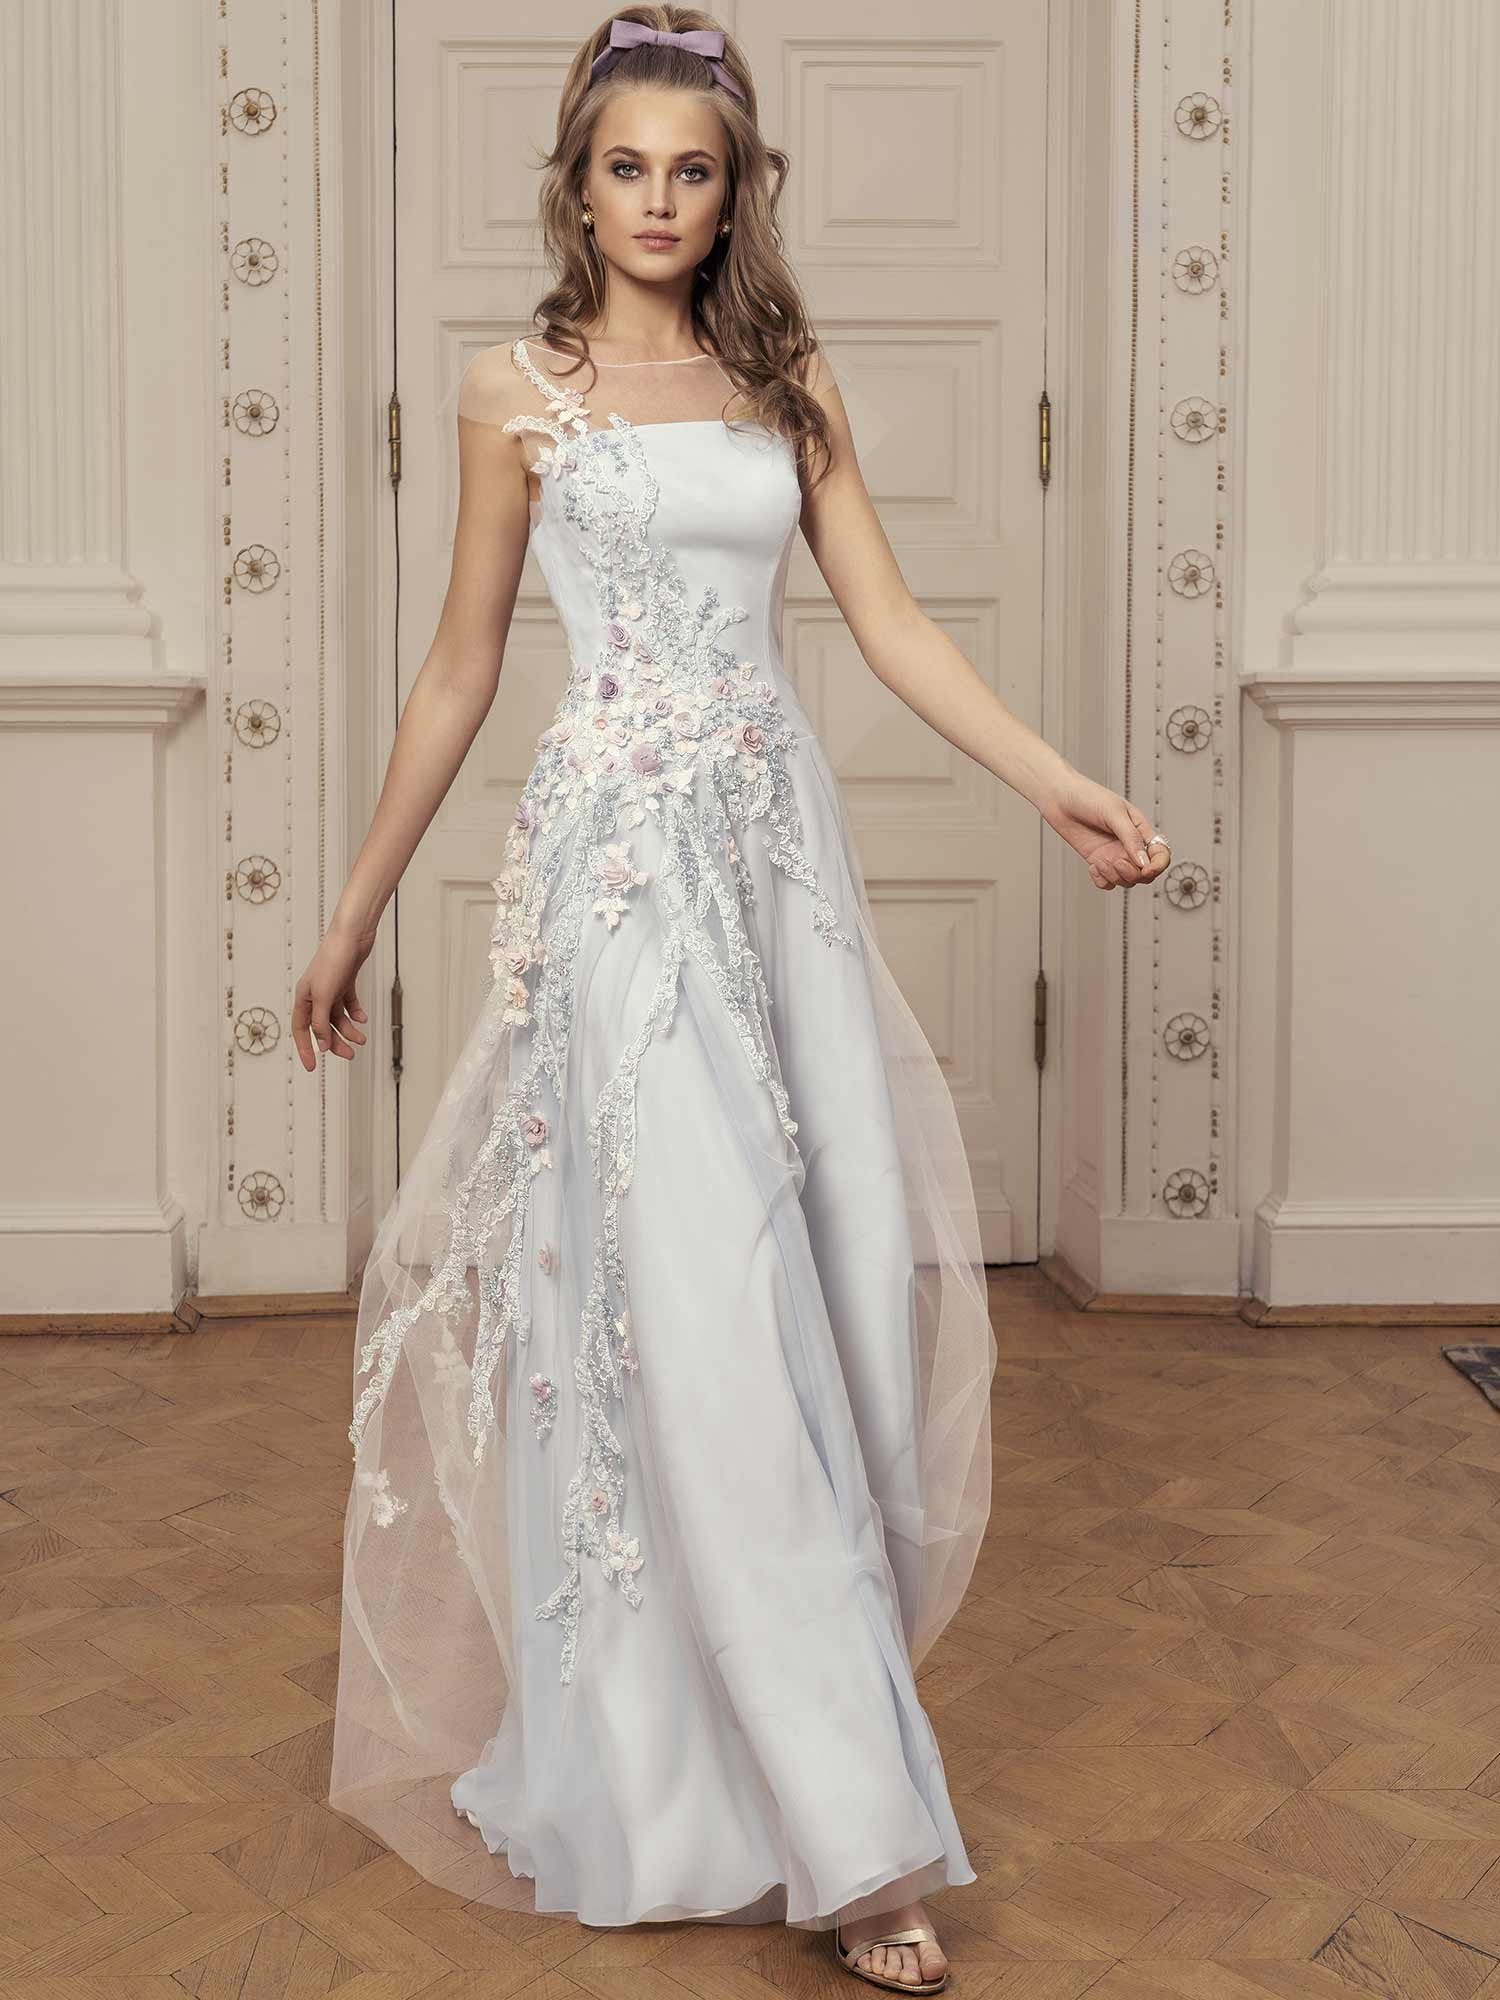 Style #526, maxi dress with sweetheart bodice, zig zag embroidery, and three quarter bishop sleeves with ruffled cuffs, available in ivory, lilac, sky-blue